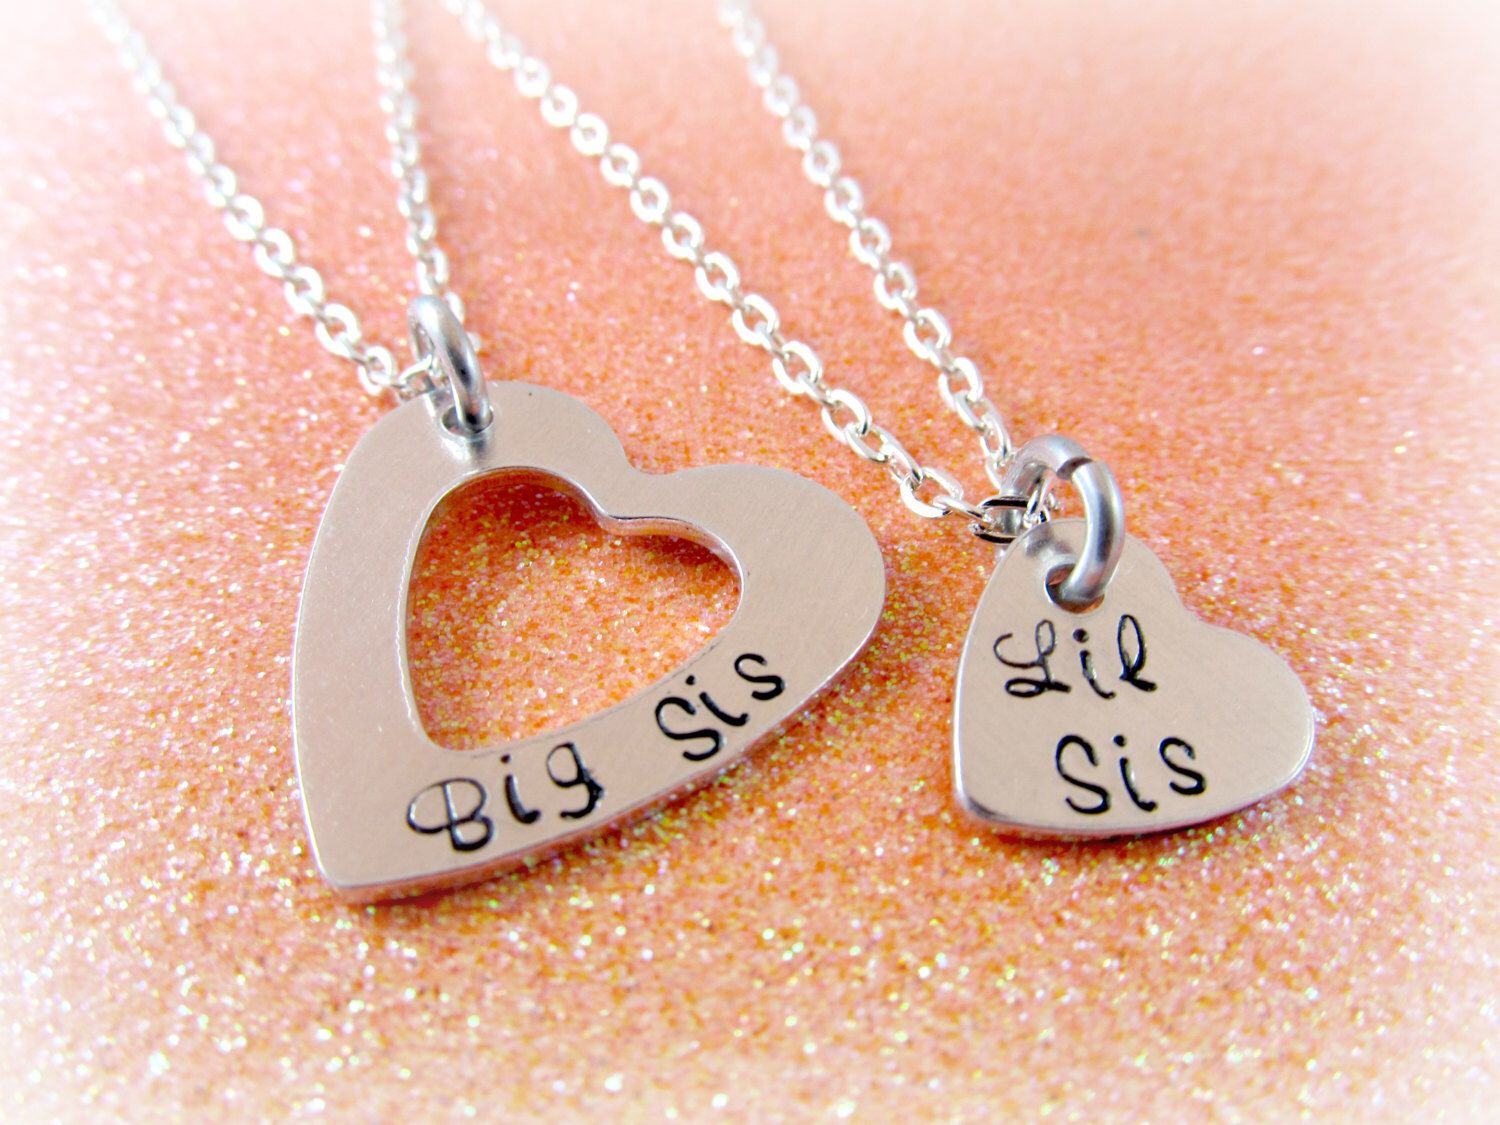 Sister Jewelry Set - Big Sis Little Sis Necklaces - Hand Stamped Necklace Set for Sisters - Sister Necklaces by EverythingPrettyShop on Etsy https://www.etsy.com/listing/125435776/sister-jewelry-set-big-sis-little-sis